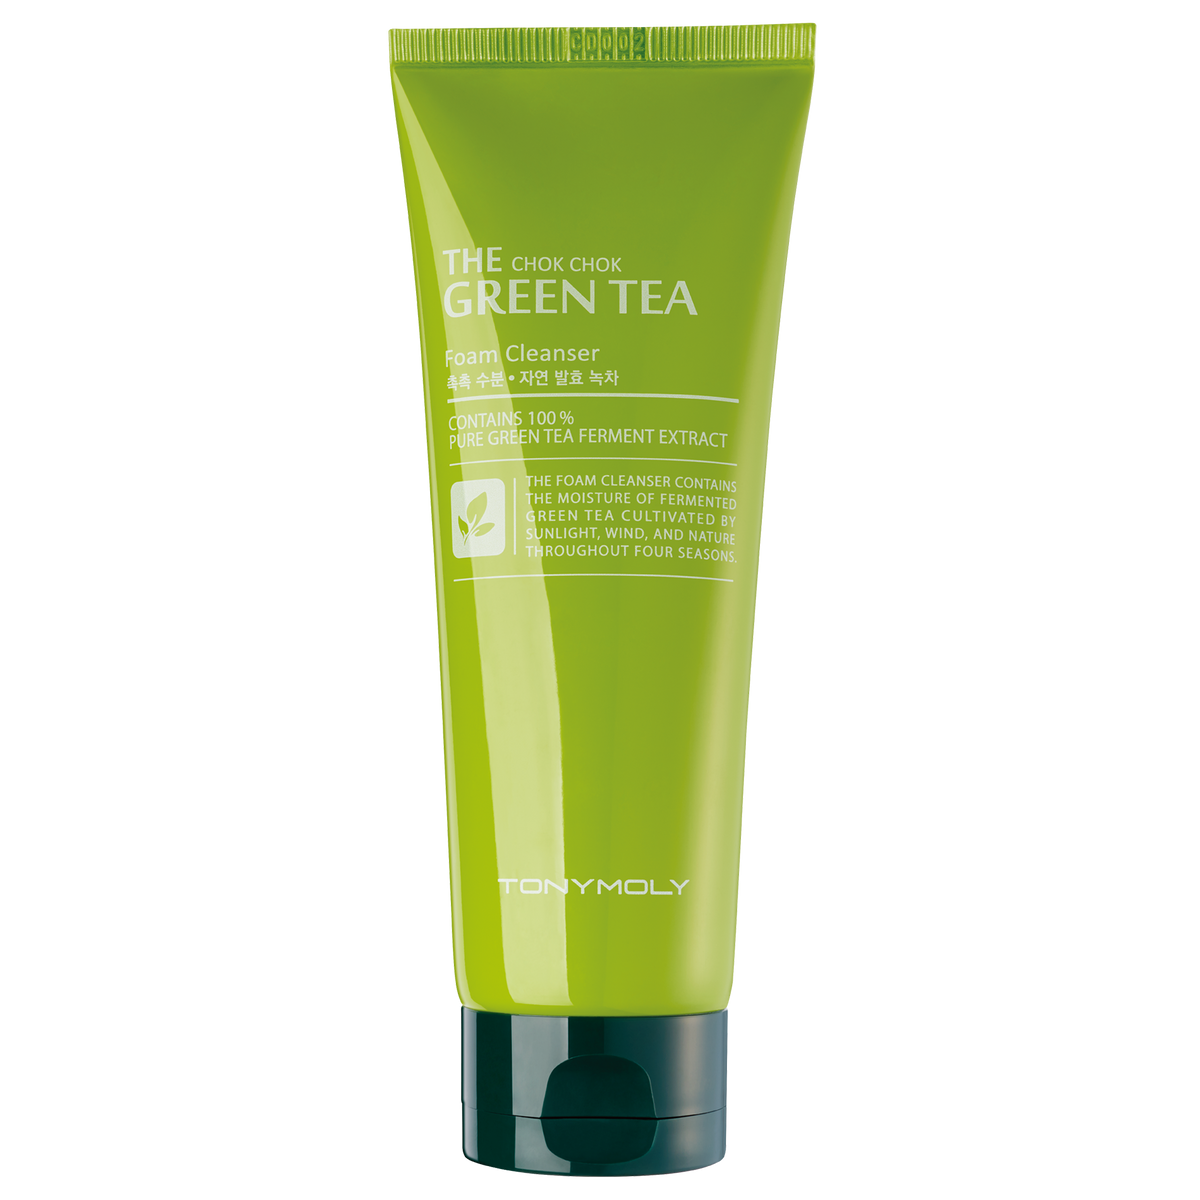 Tonymoly - The Chok Chok Green Tea Foam Cleanser